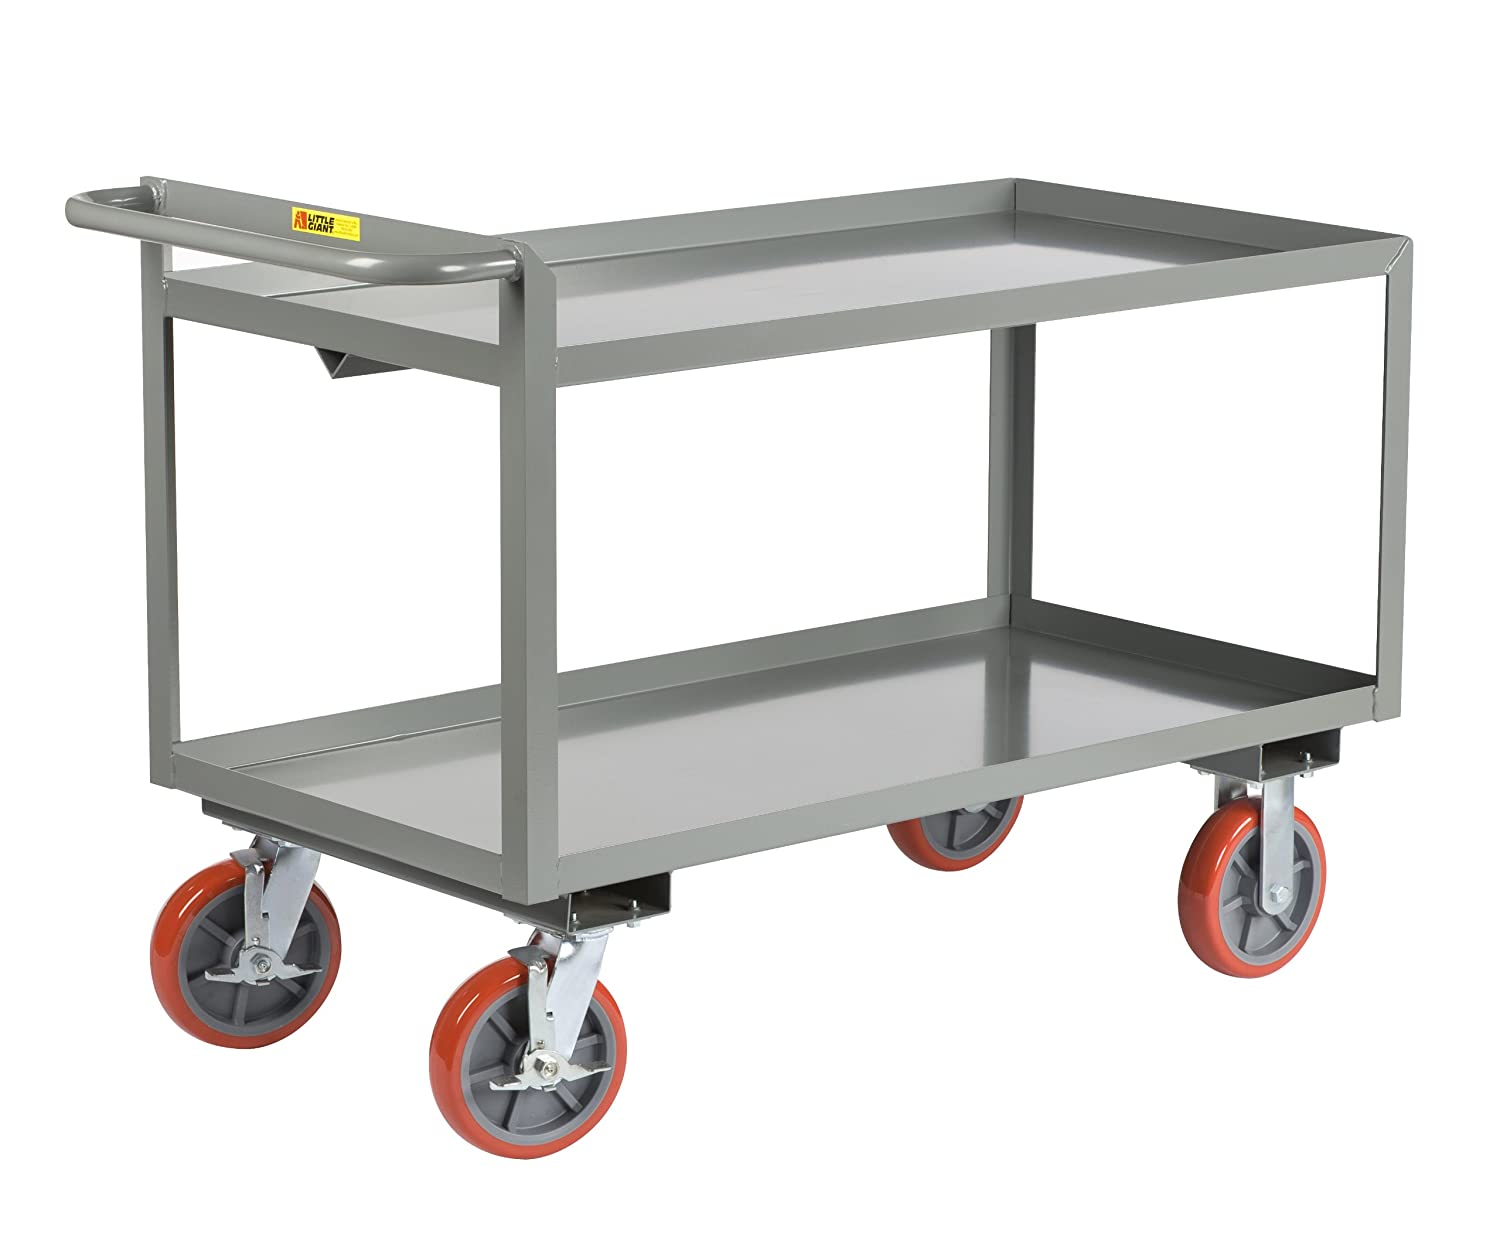 "Little Giant Gl-2436-8Pybk Lip Rand Shelves Merchandise Collector mit 8"" Polyurethane Wheels, 3600 Lbs Capacity, 36"" Length X 24"" Width X 32"" Height"